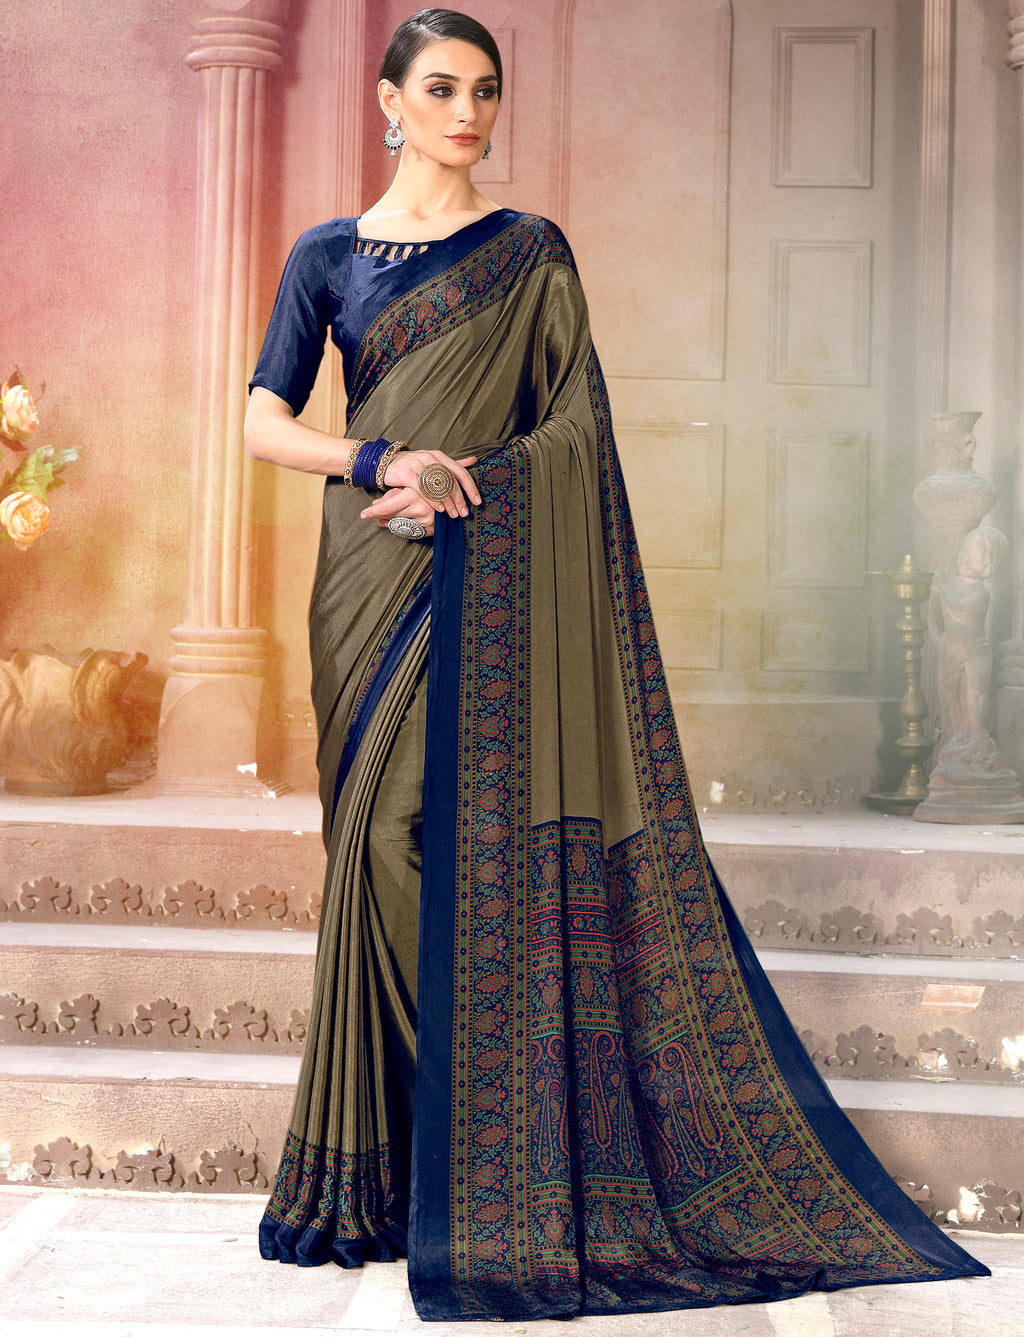 Grey & Blue Color Crepe Soft & Light Weight Printed Sarees NYF-7259